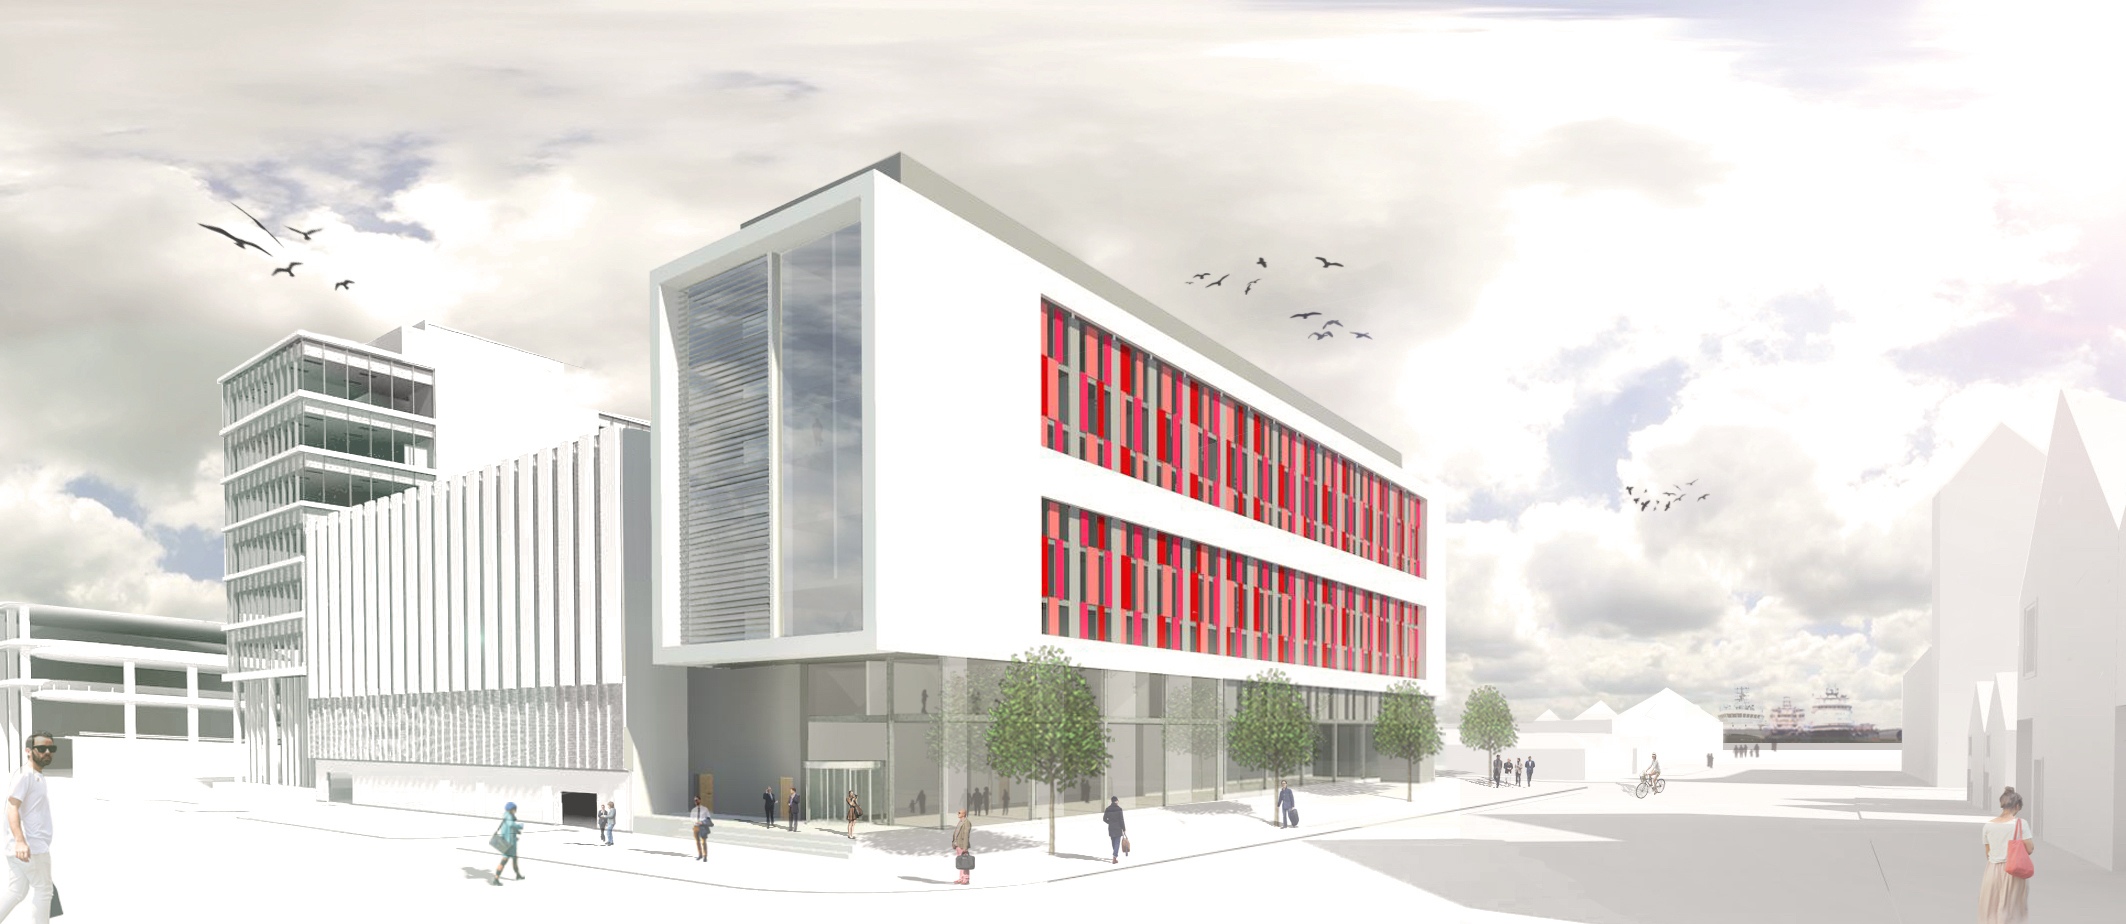 How the new hotel will look if Drum's plans are approved